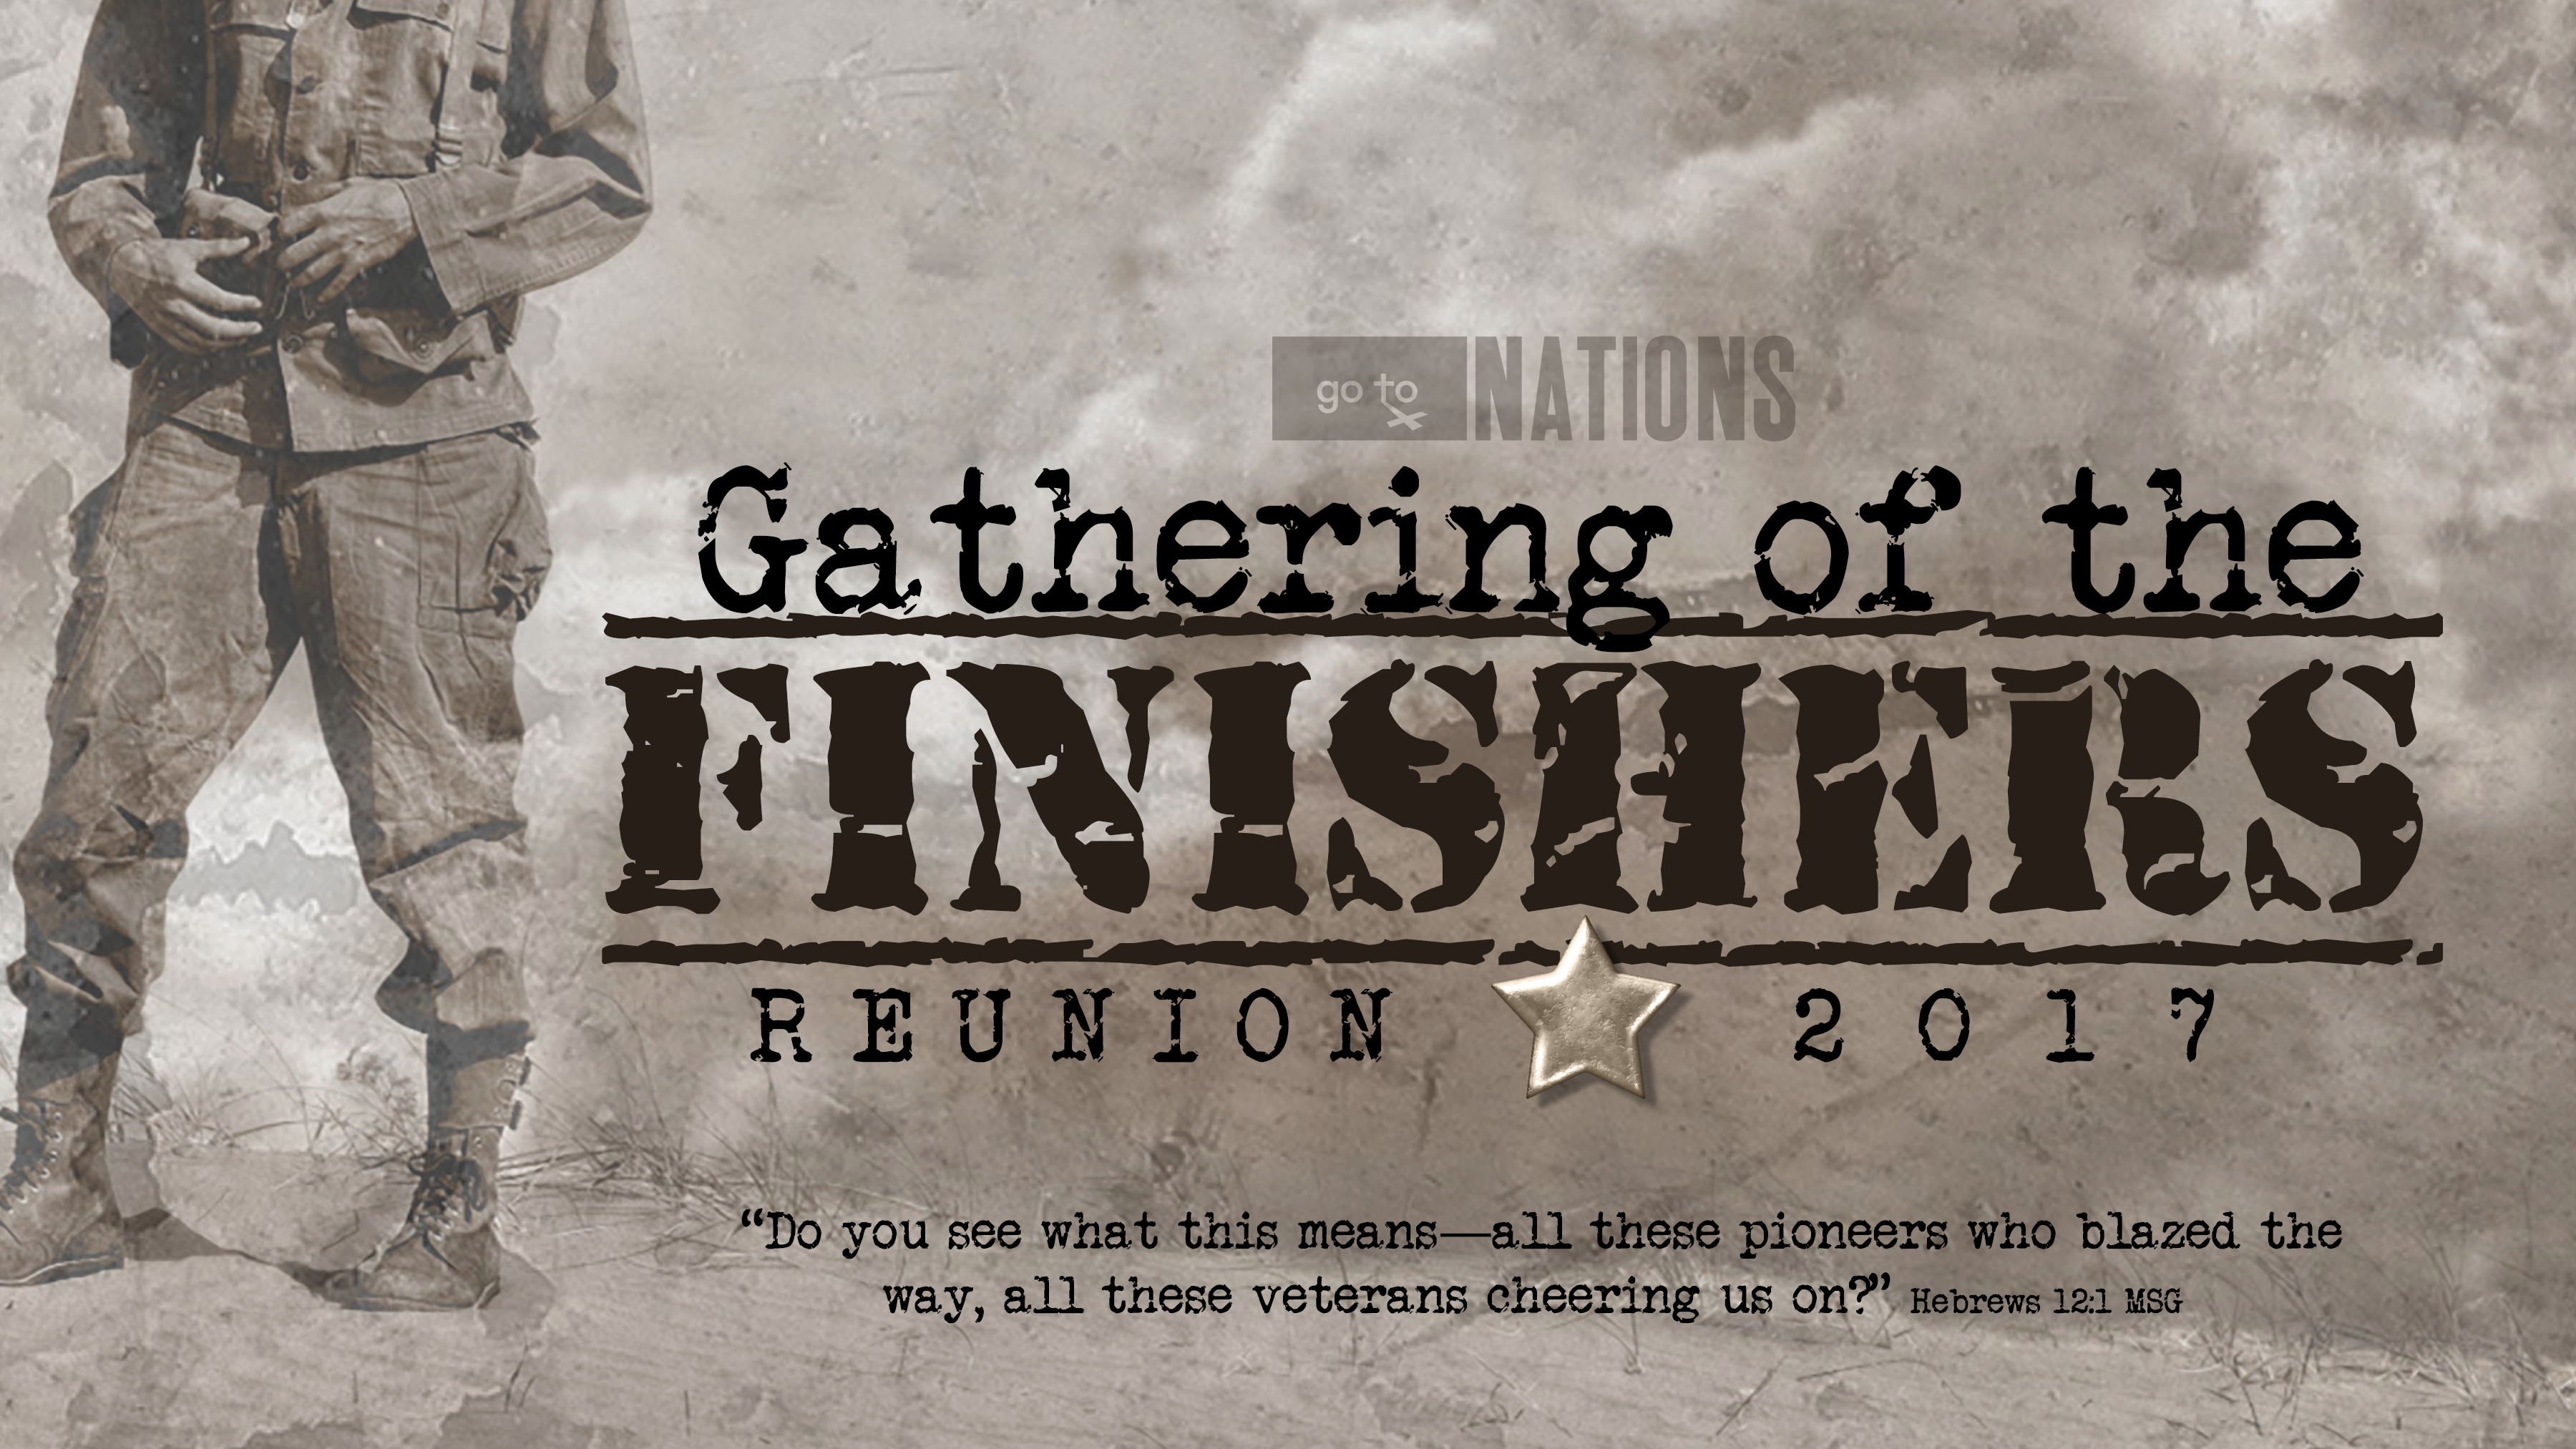 GTN_Reuinion_2017_-_Gathering_of_the_Finishers.png